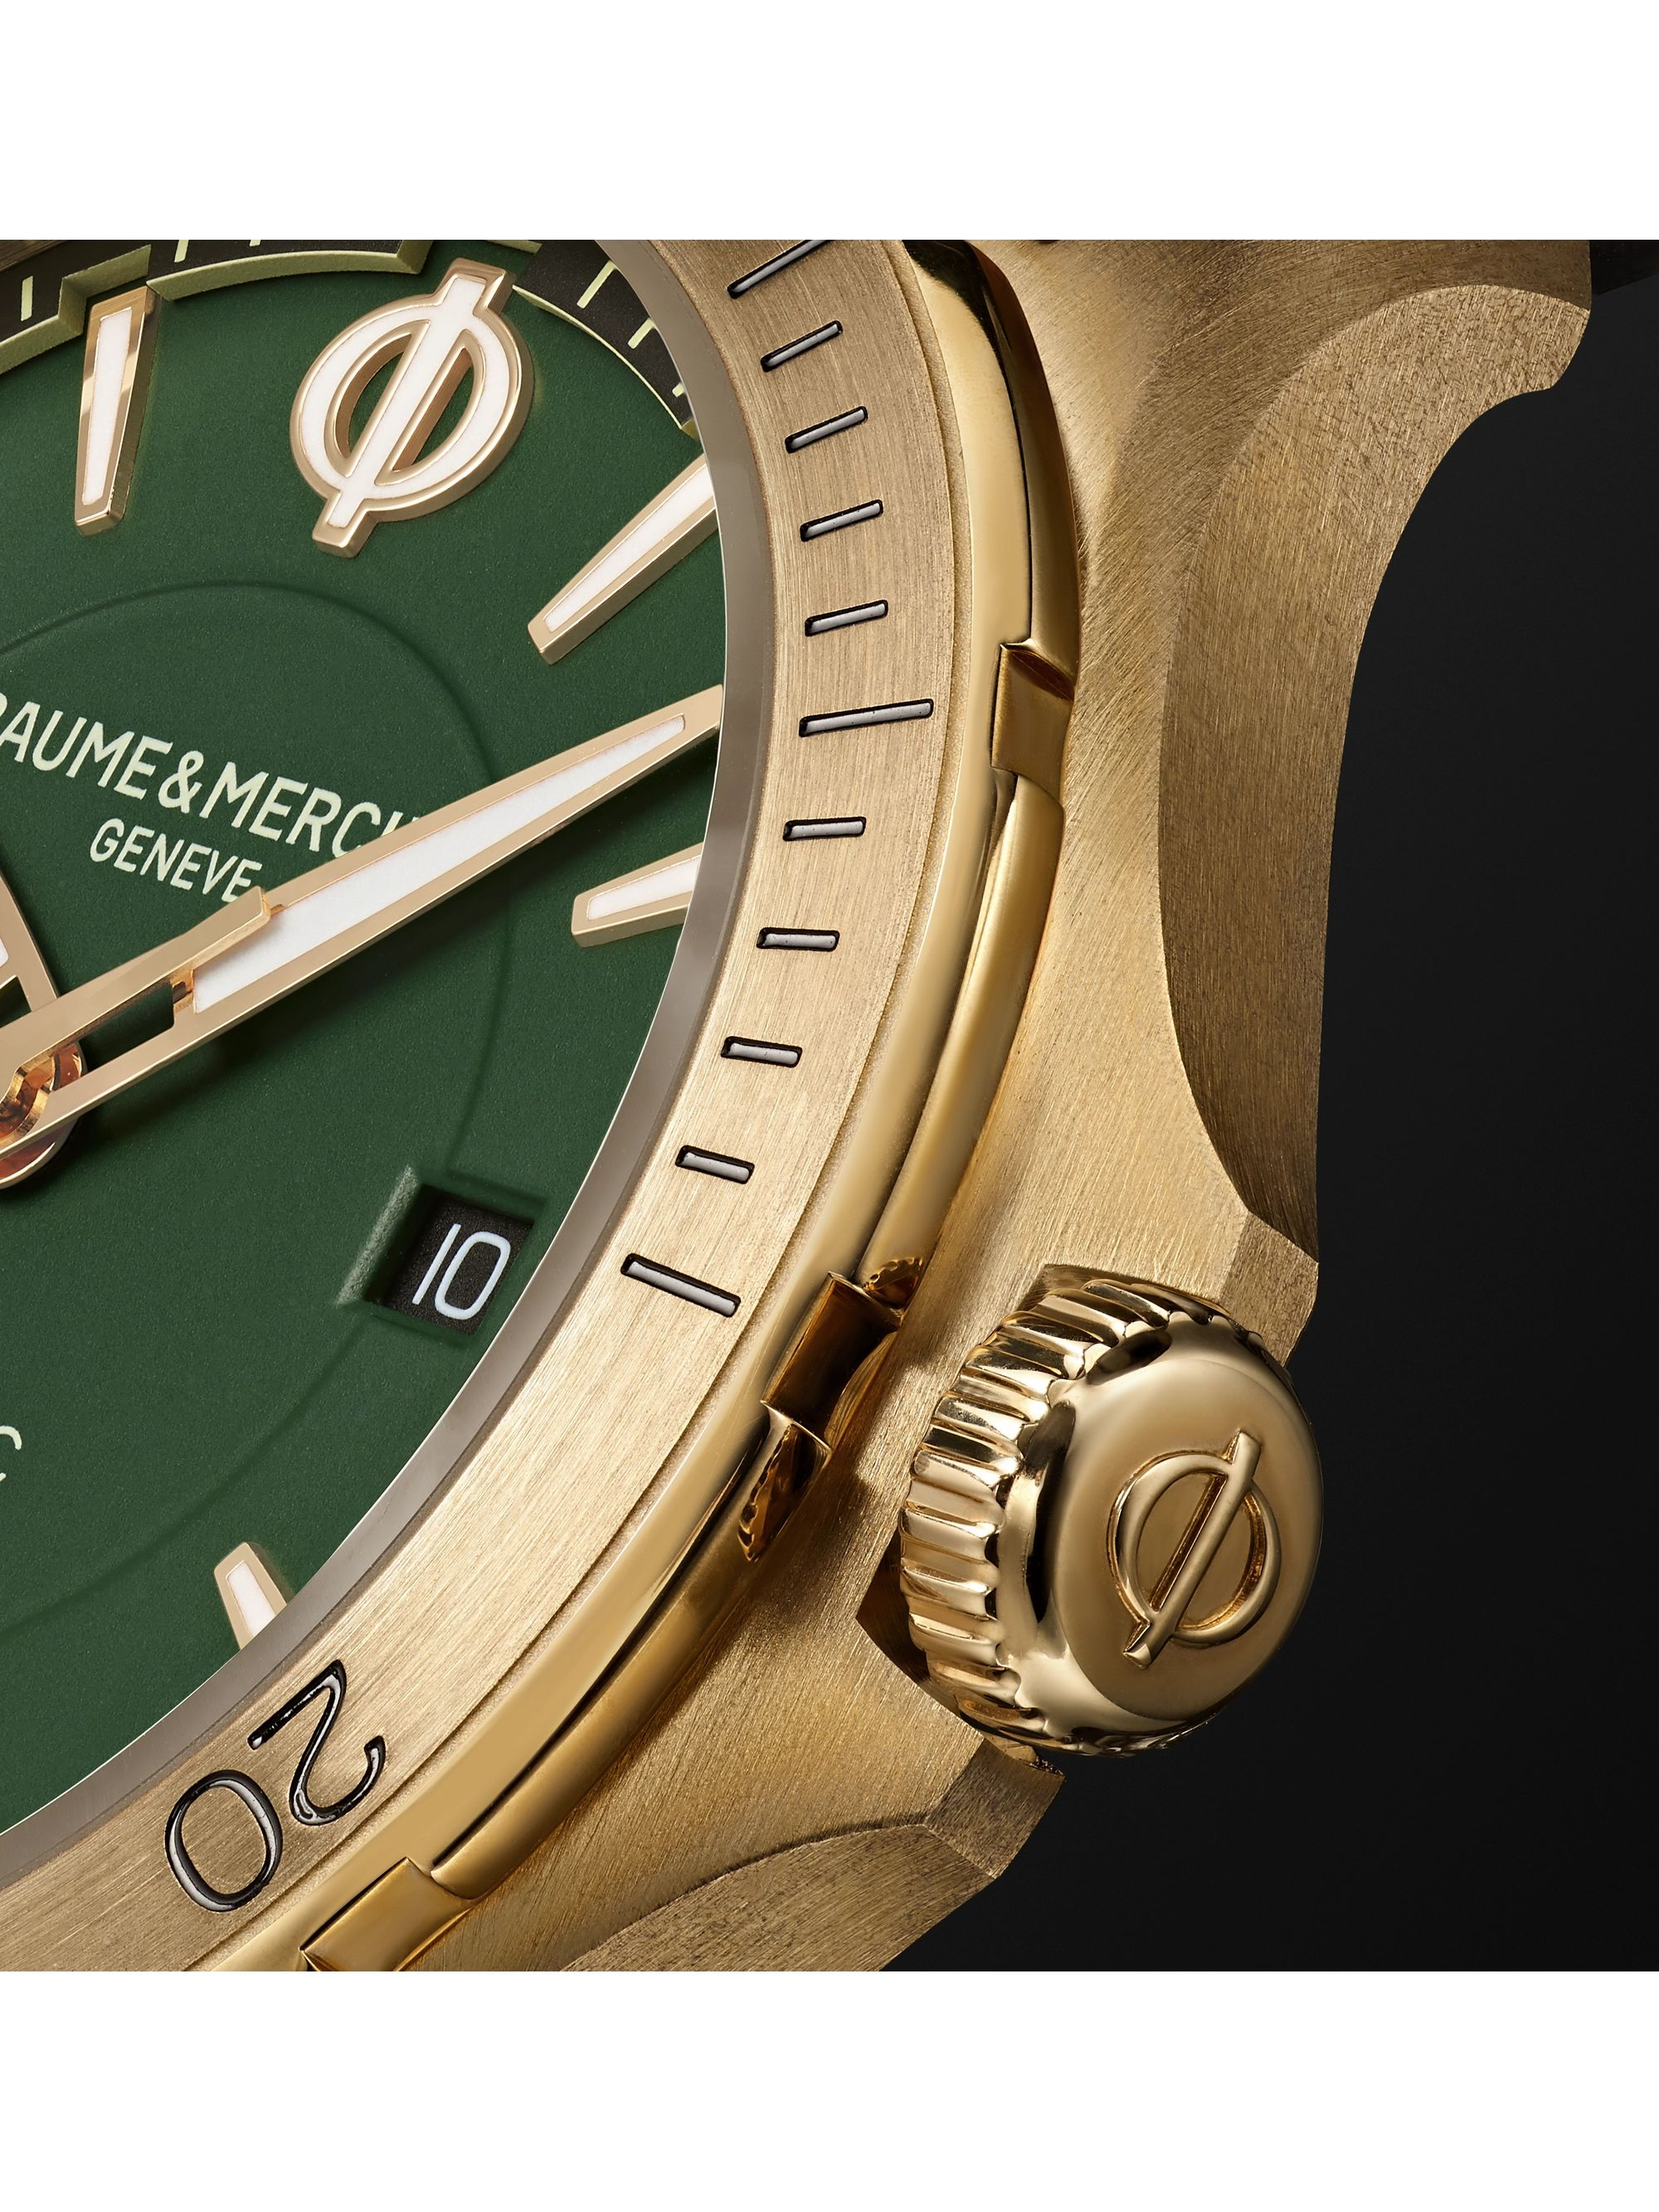 Baume & Mercier Clifton Club Automatic 42mm Bronze and Suede Watch, Ref. No. M0A10503